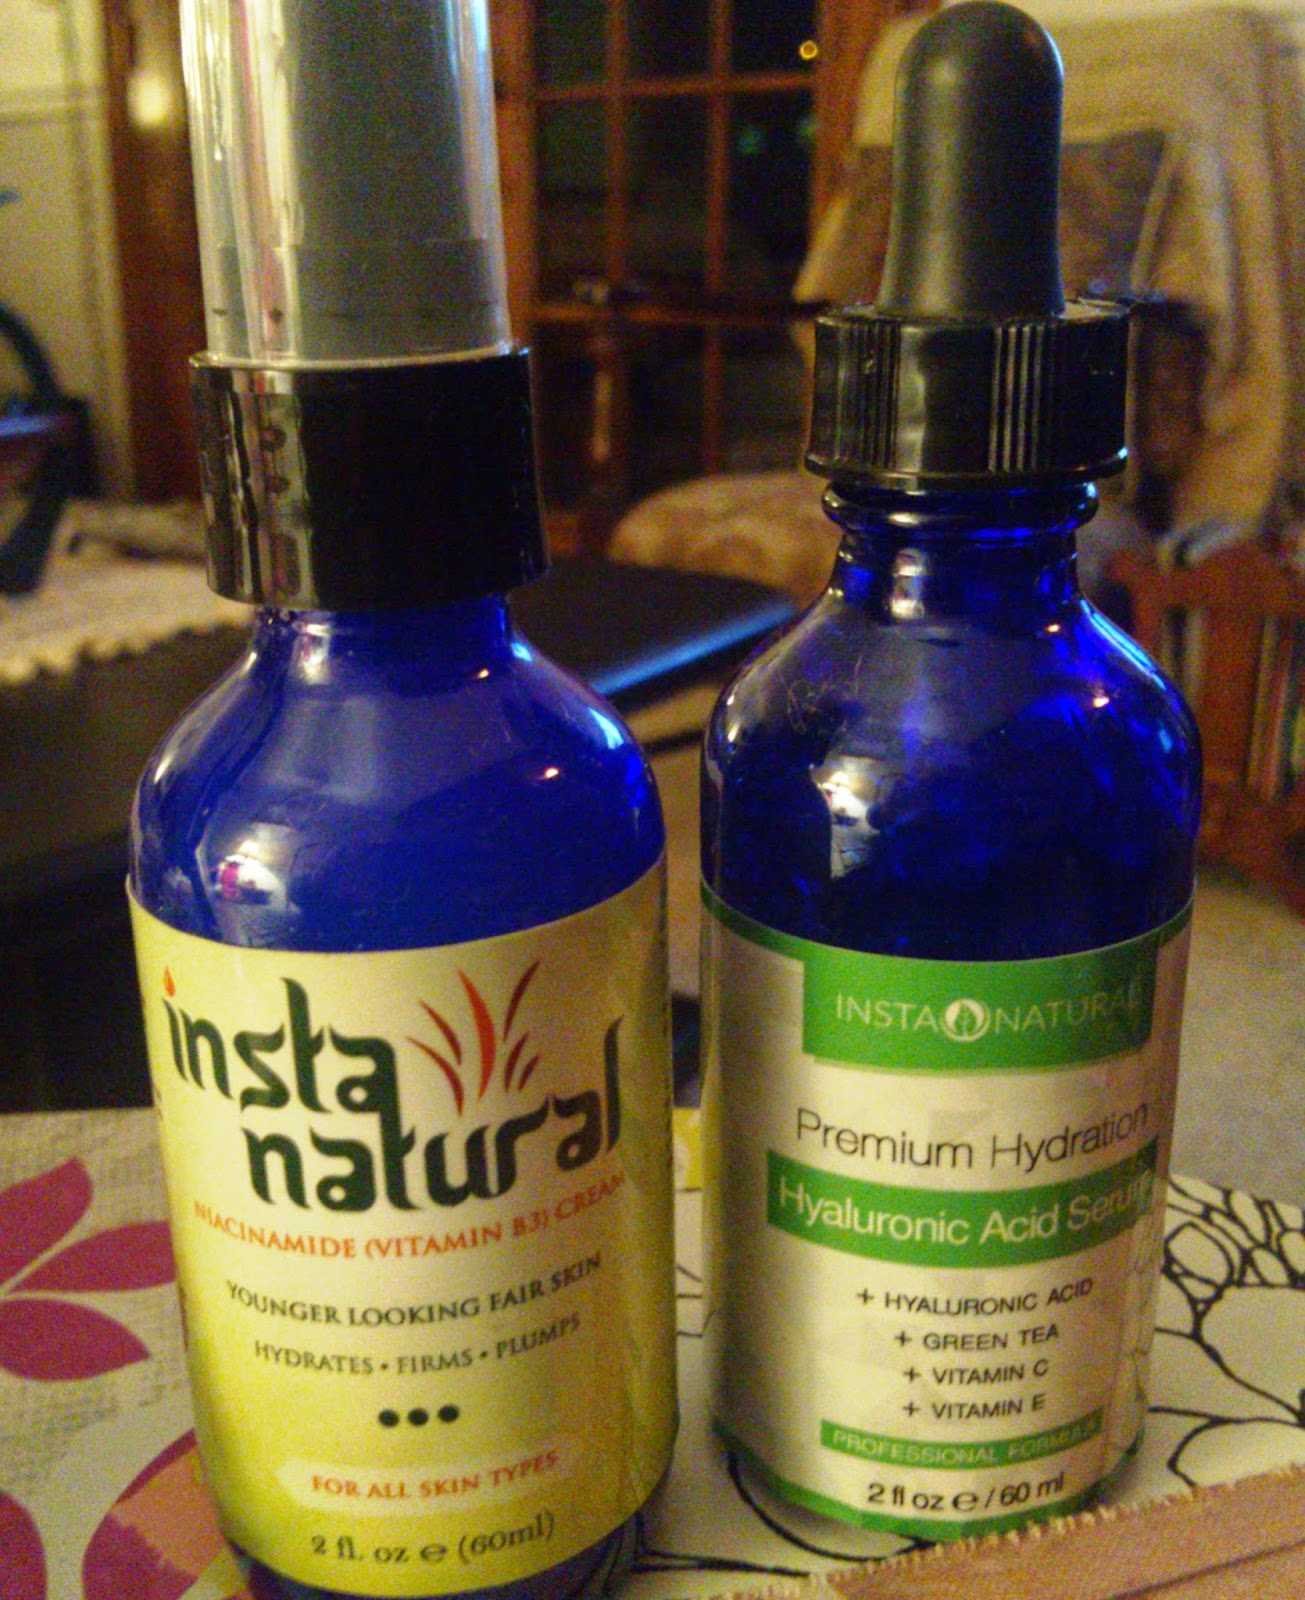 InstaNatural Niacinamide Vitamin B3 Serum Review